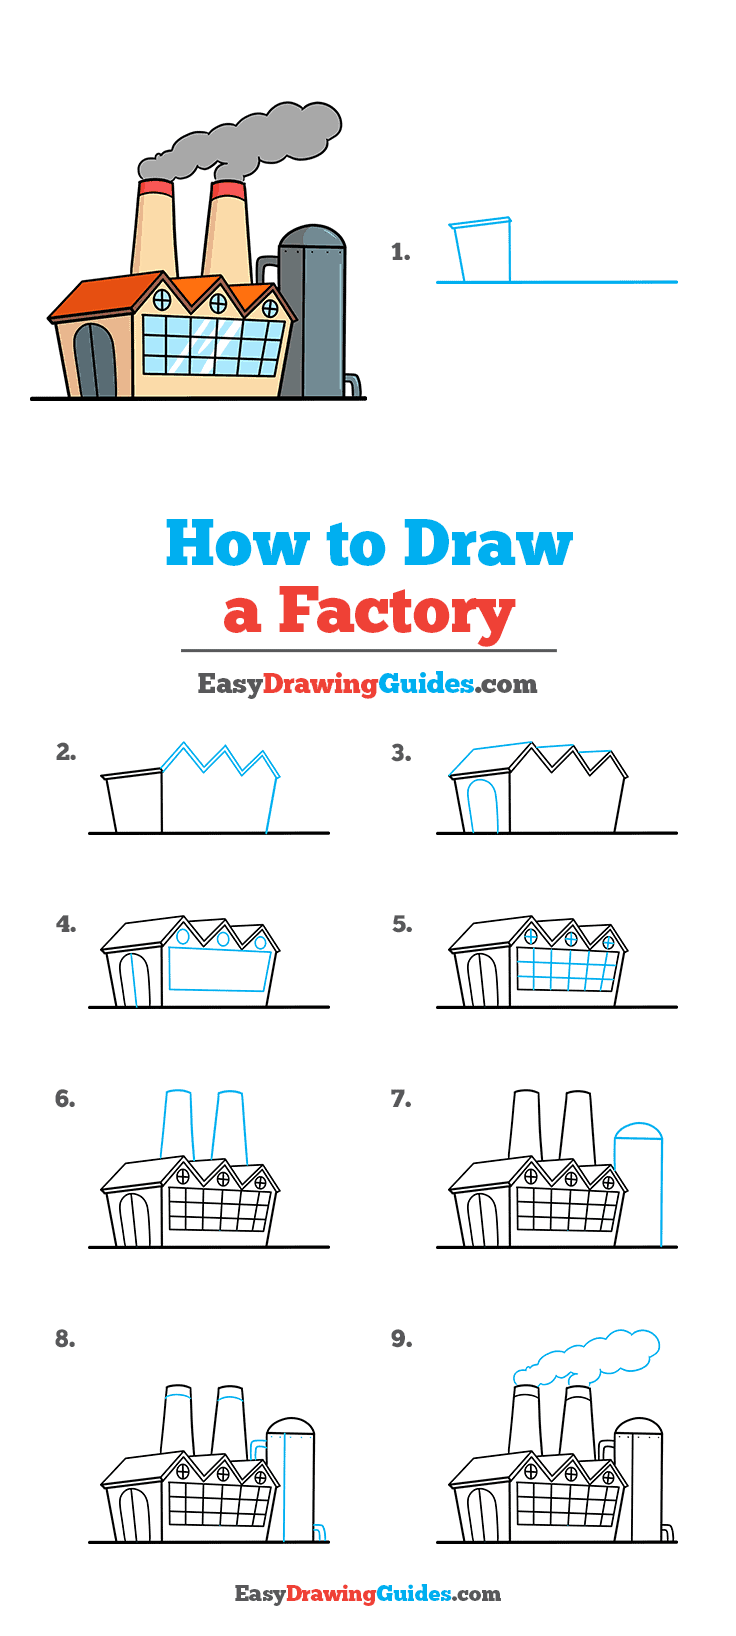 How to Draw Factory